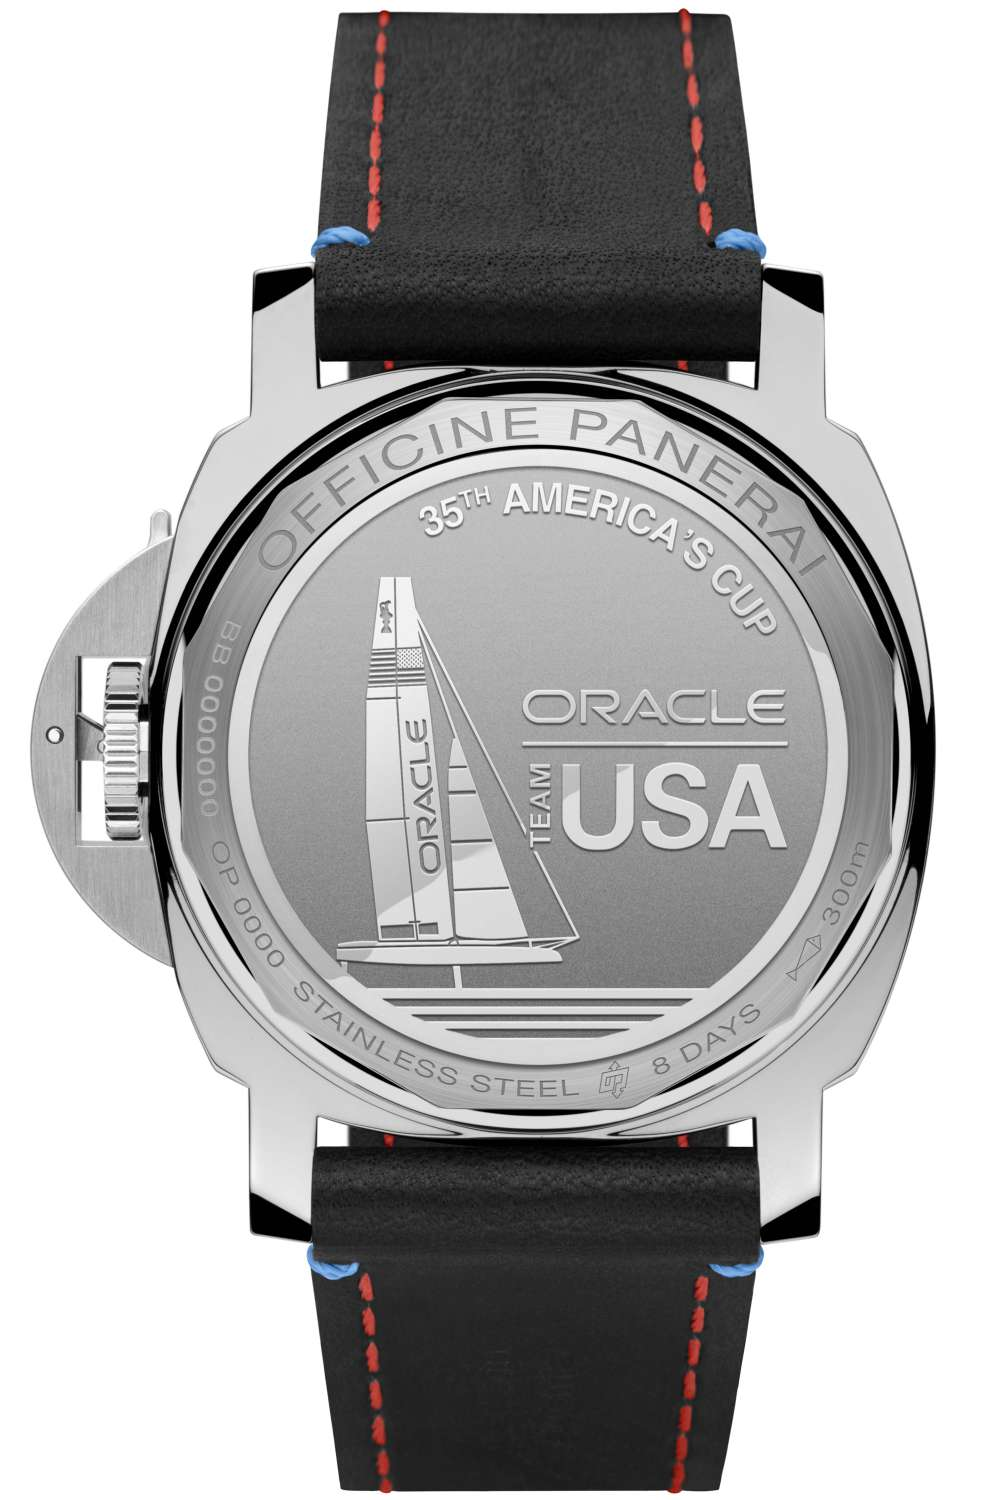 Panerai-Oracle-Team-USA-Americas-Cup-Pam00724-2.jpg